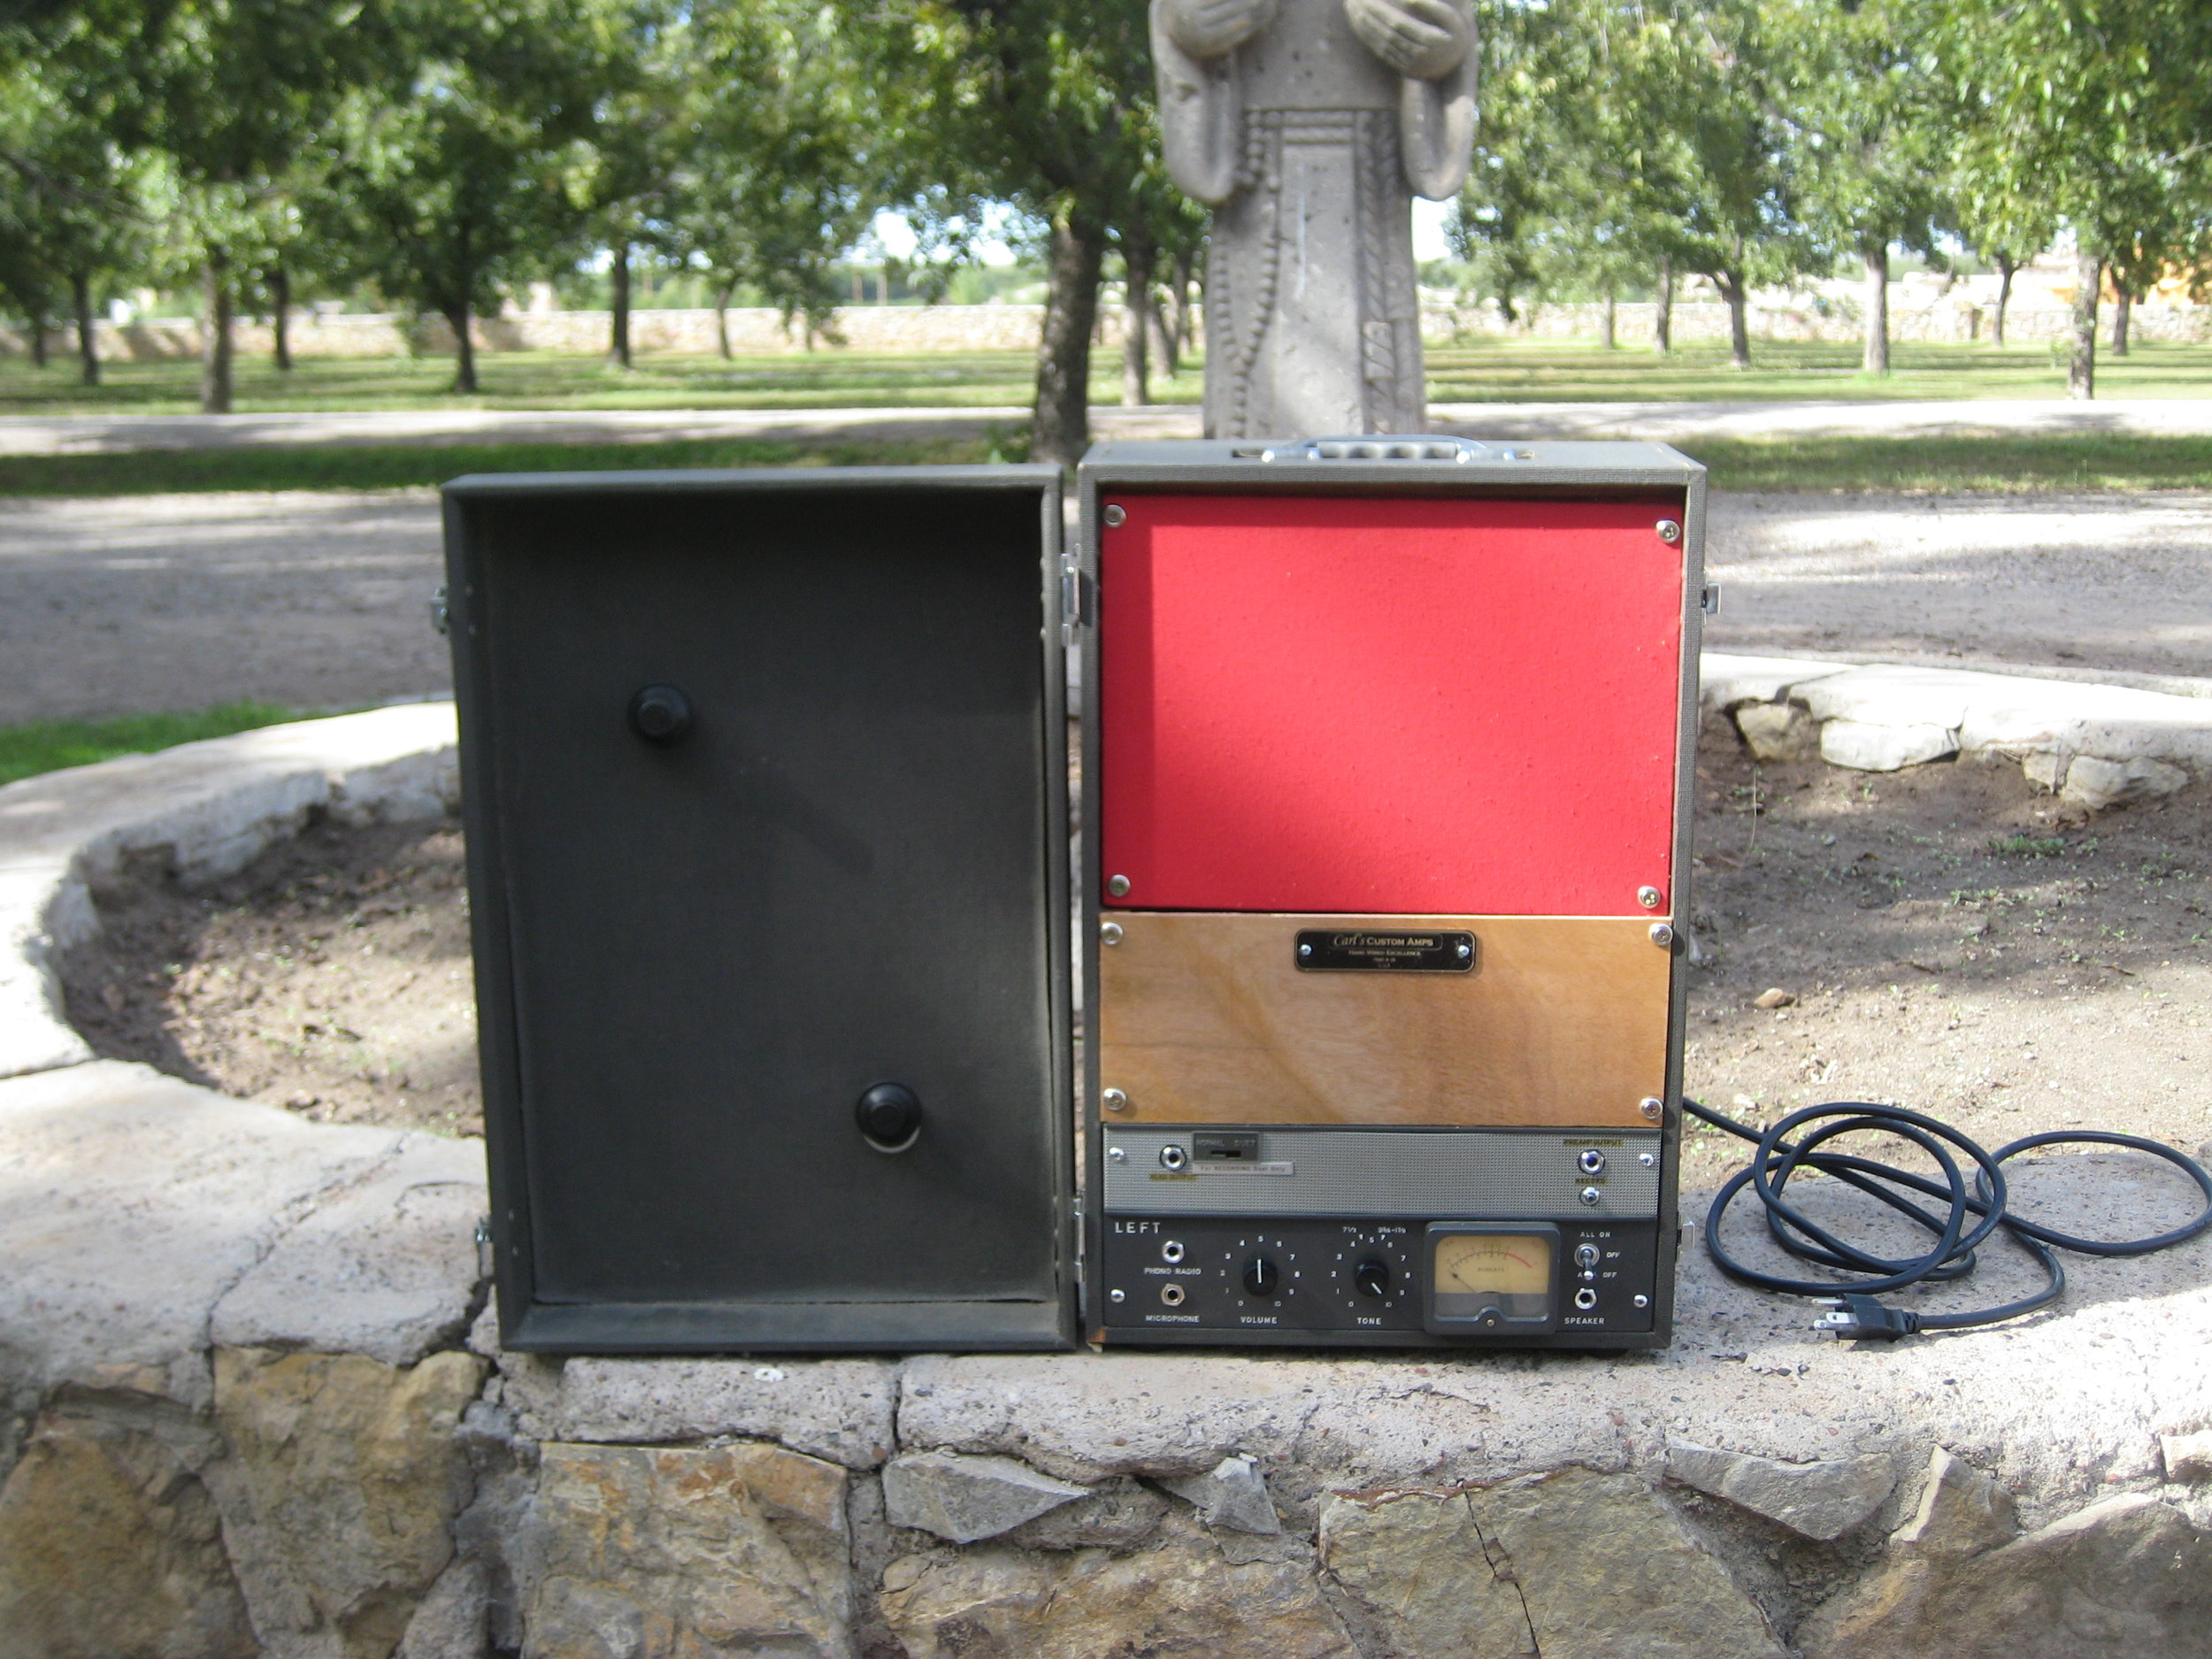 I did this one a while back . This little amp was built out of and old Reel to Reel tape recorder. The Tape player did so I converted the amp over to a 5 Watt Tweed Princeton with an El-84 and added an 8 inch speaker. The Meter lights up and moves.